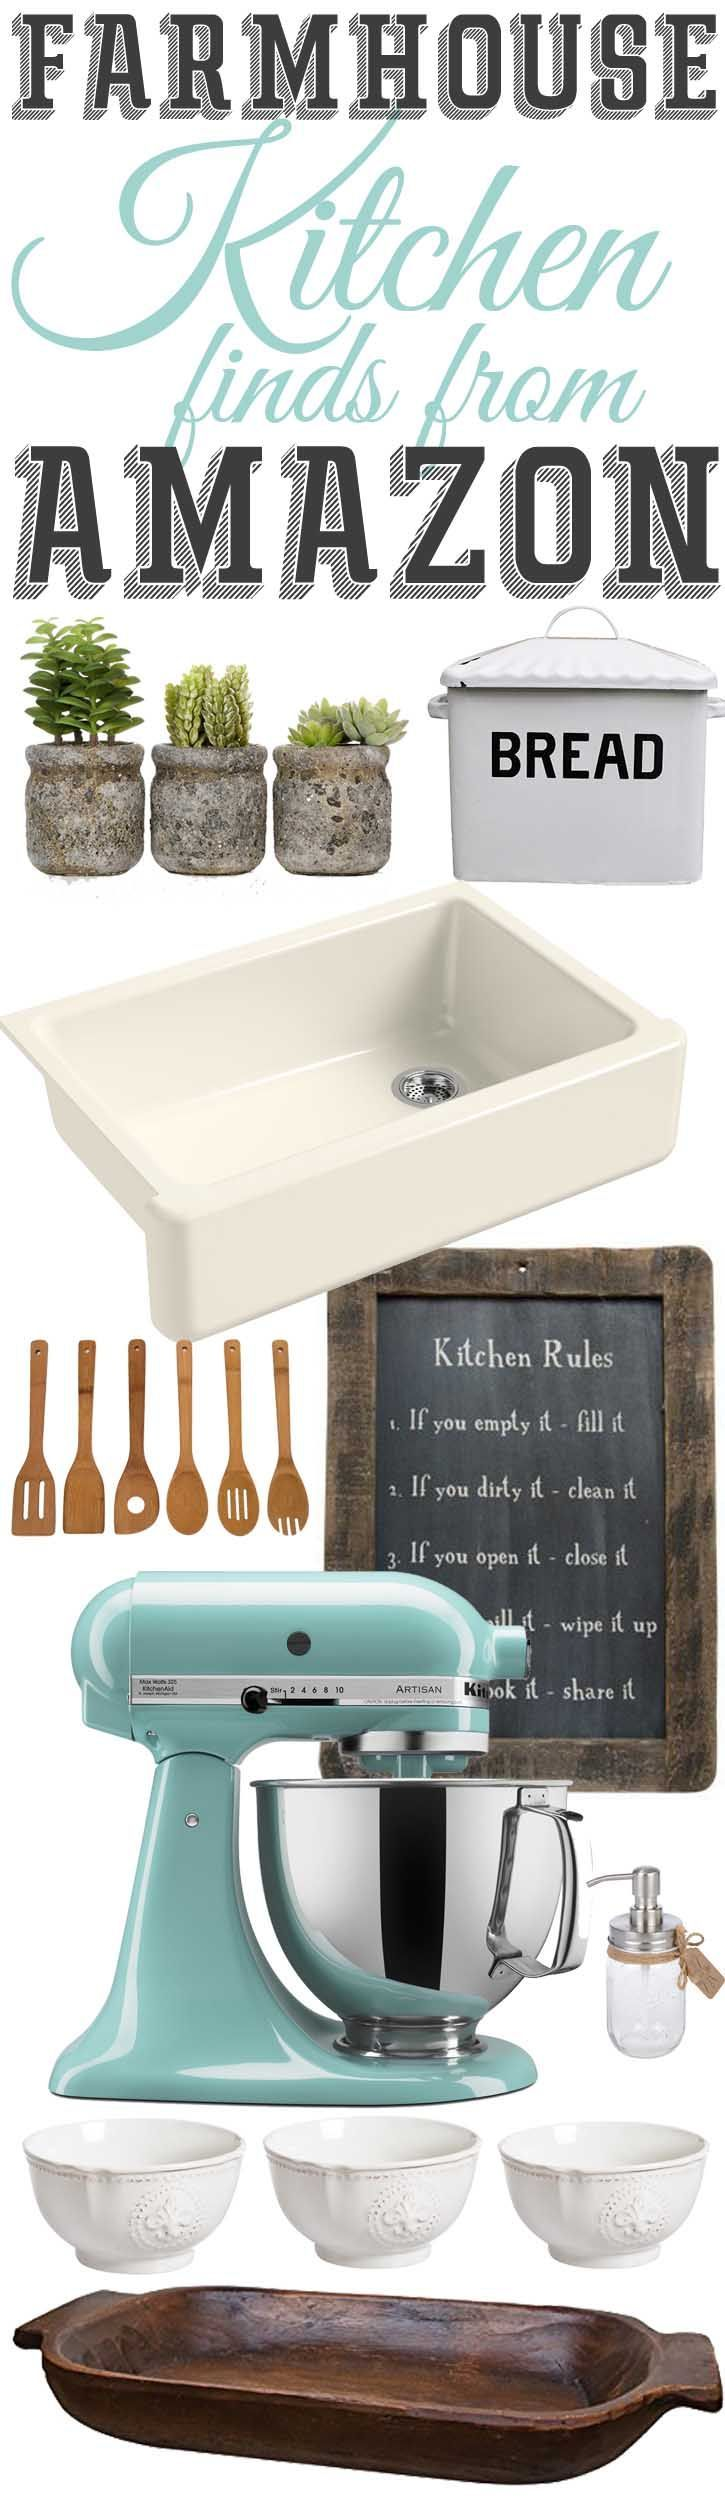 So you want to add farmhouse style to your kitchen do you? I have rounded up a whole list of items to help you do just that!   The Mountain View CottageThe Mountain View Cottage  Farmhouse style, farmhouse inspired, farmhouse kitchens, farmhouse decor, farmhouse sink, farmhouse accessories